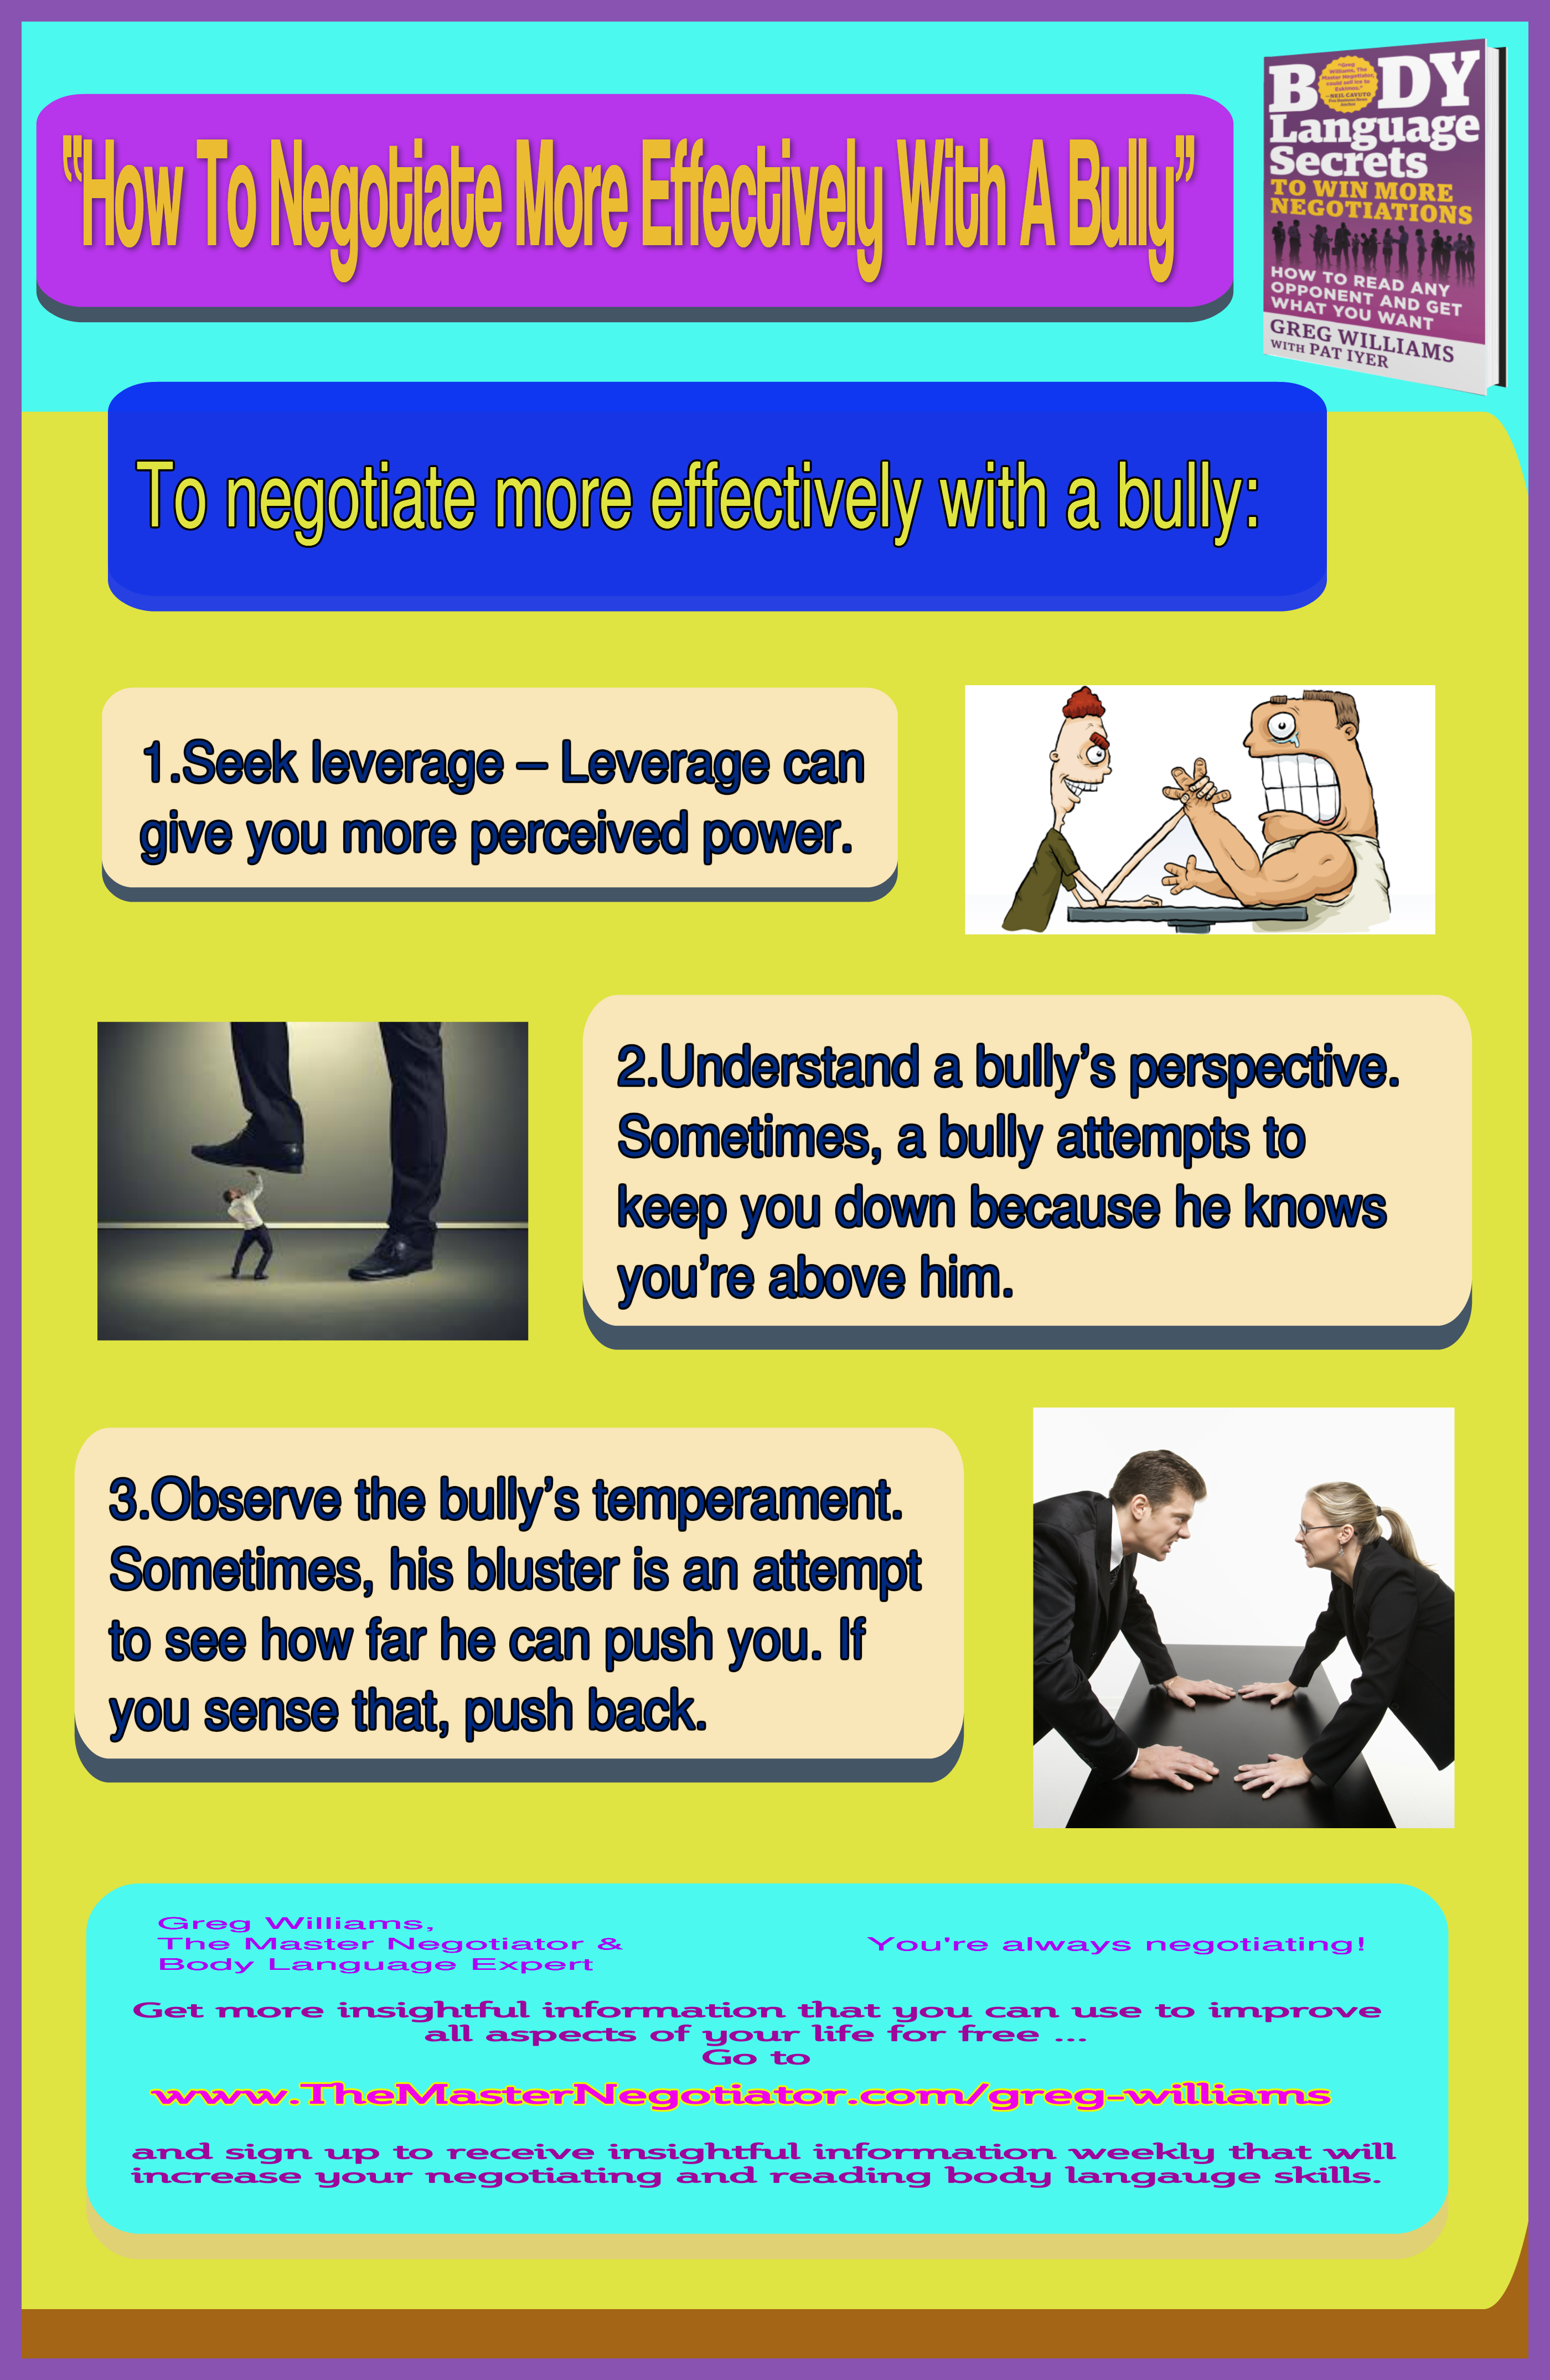 How To Negotiate More Effectively With A Bully